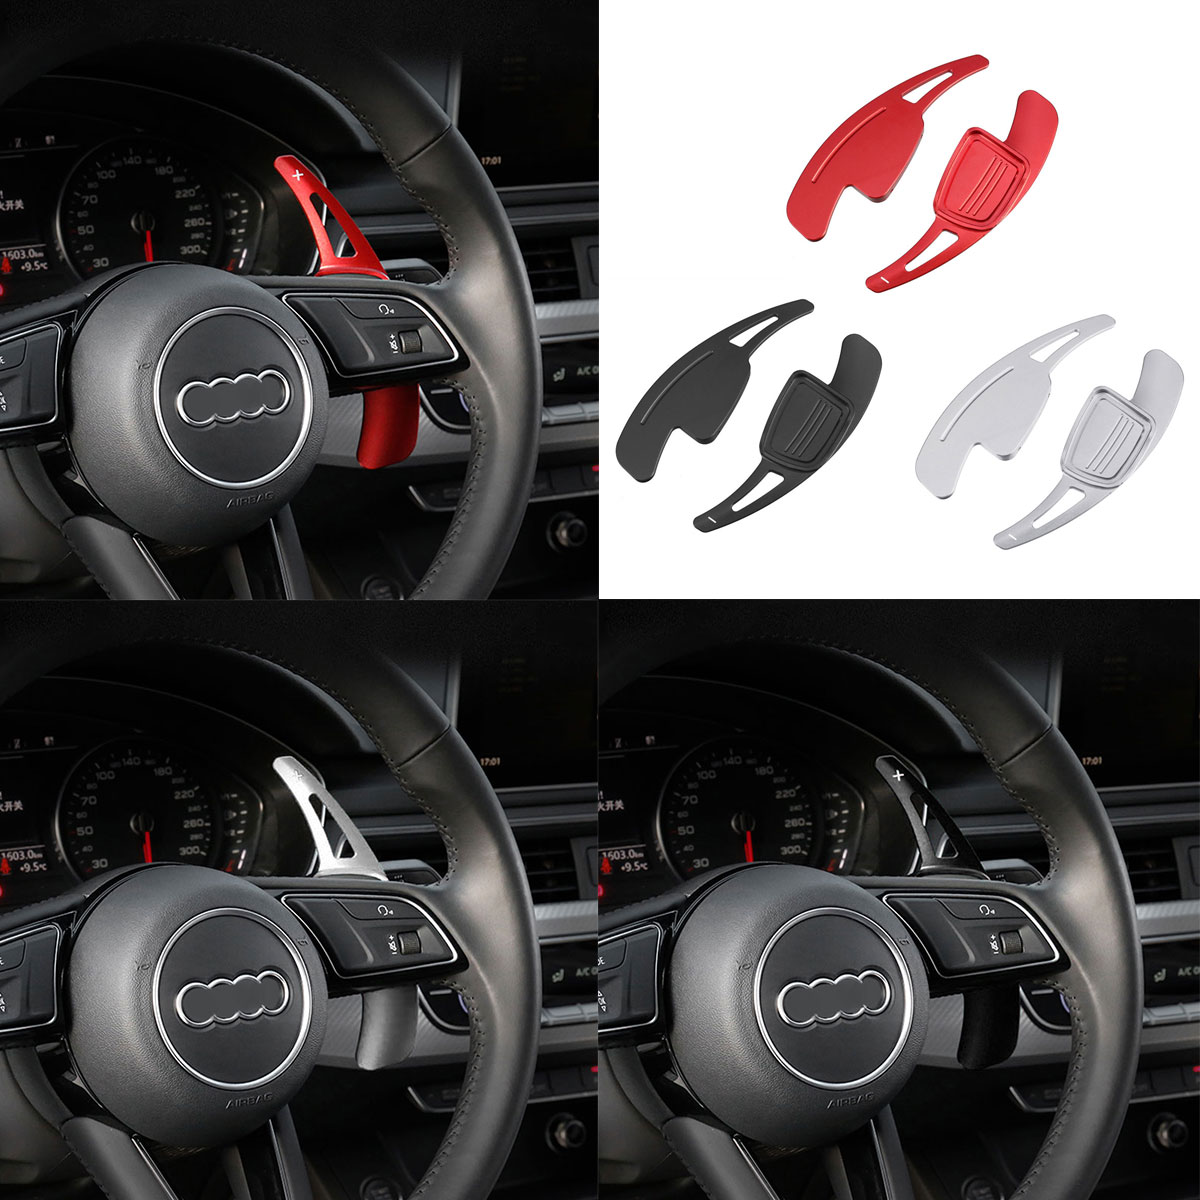 2X Car Steering Wheel Shift Paddle Plate Shifters Extension Replacement Accessories For Audi A4 B9 A5 2017 2018